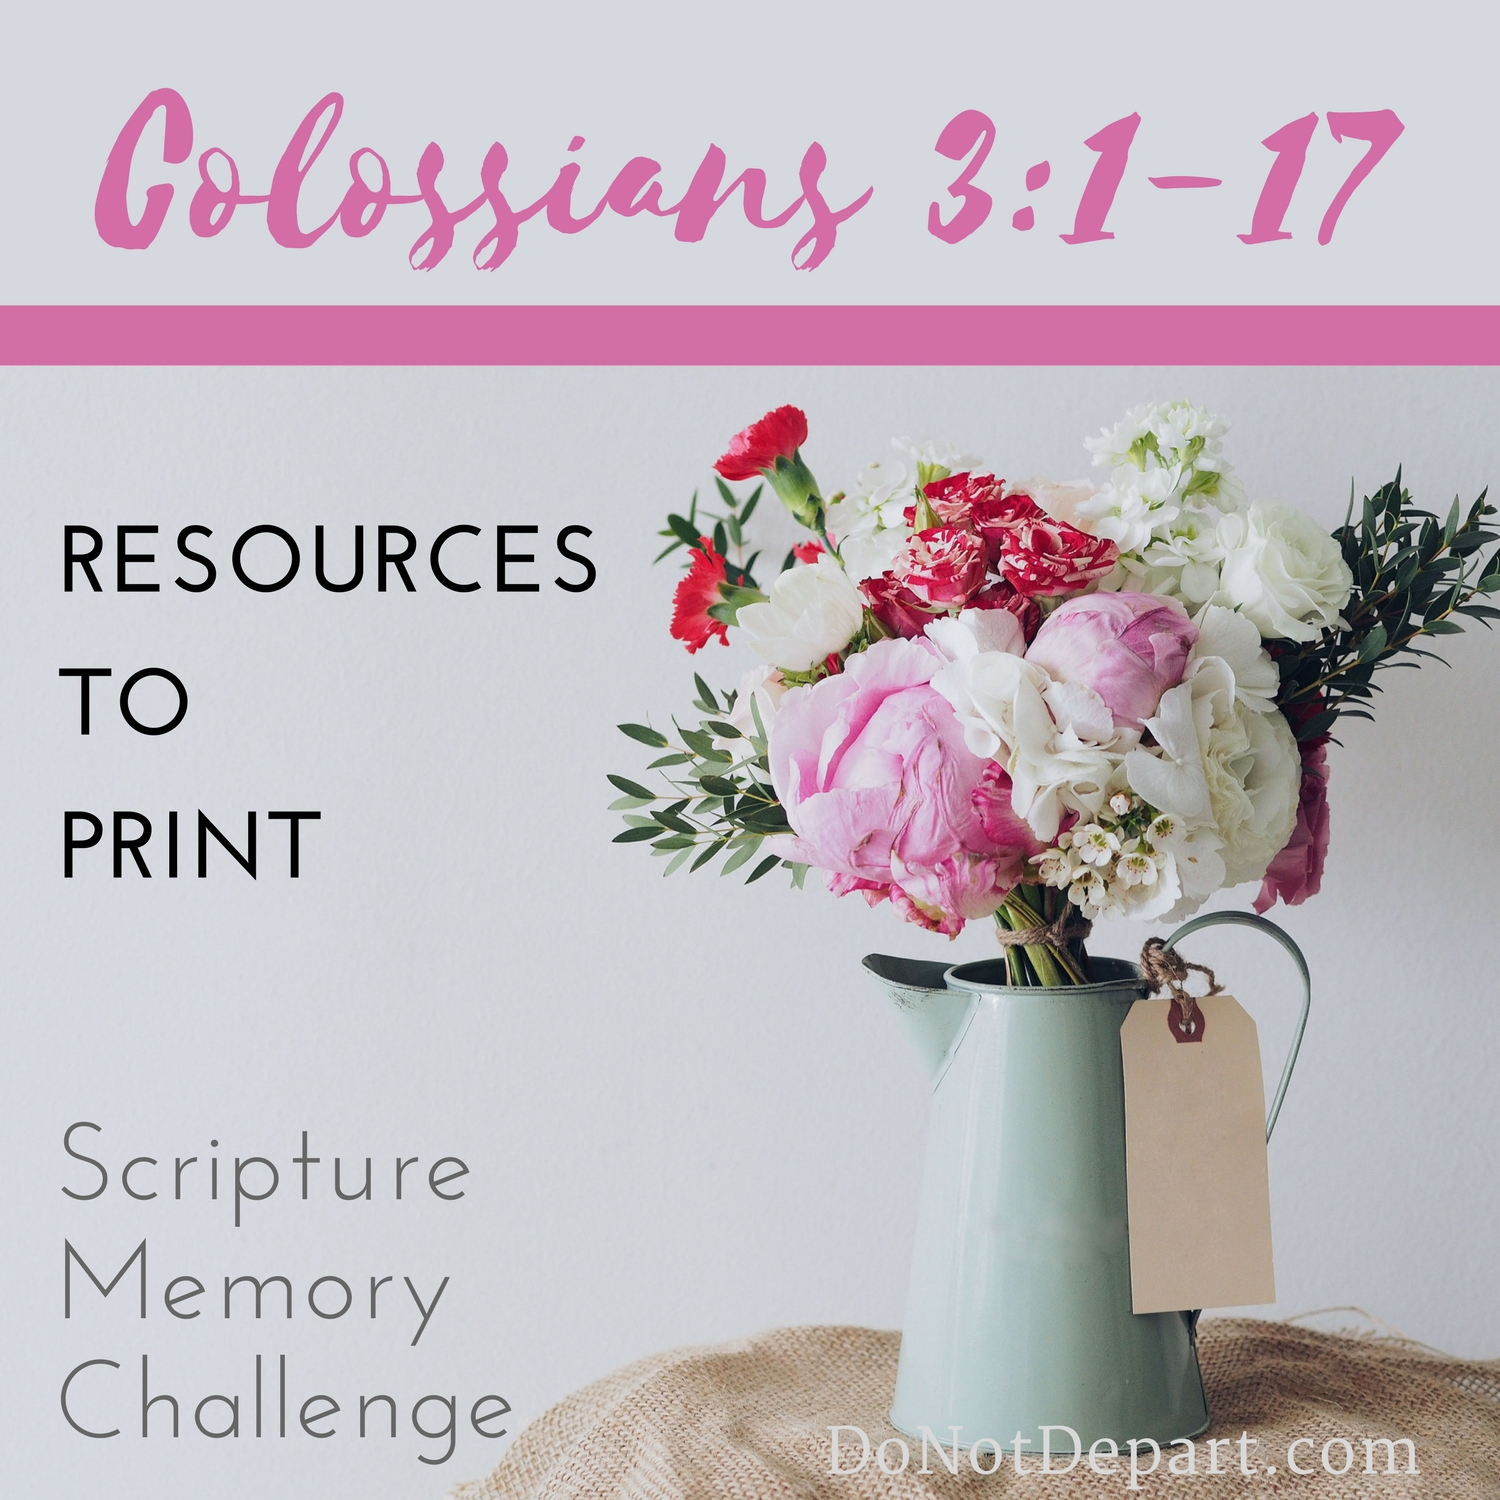 Resources-Colossians-3